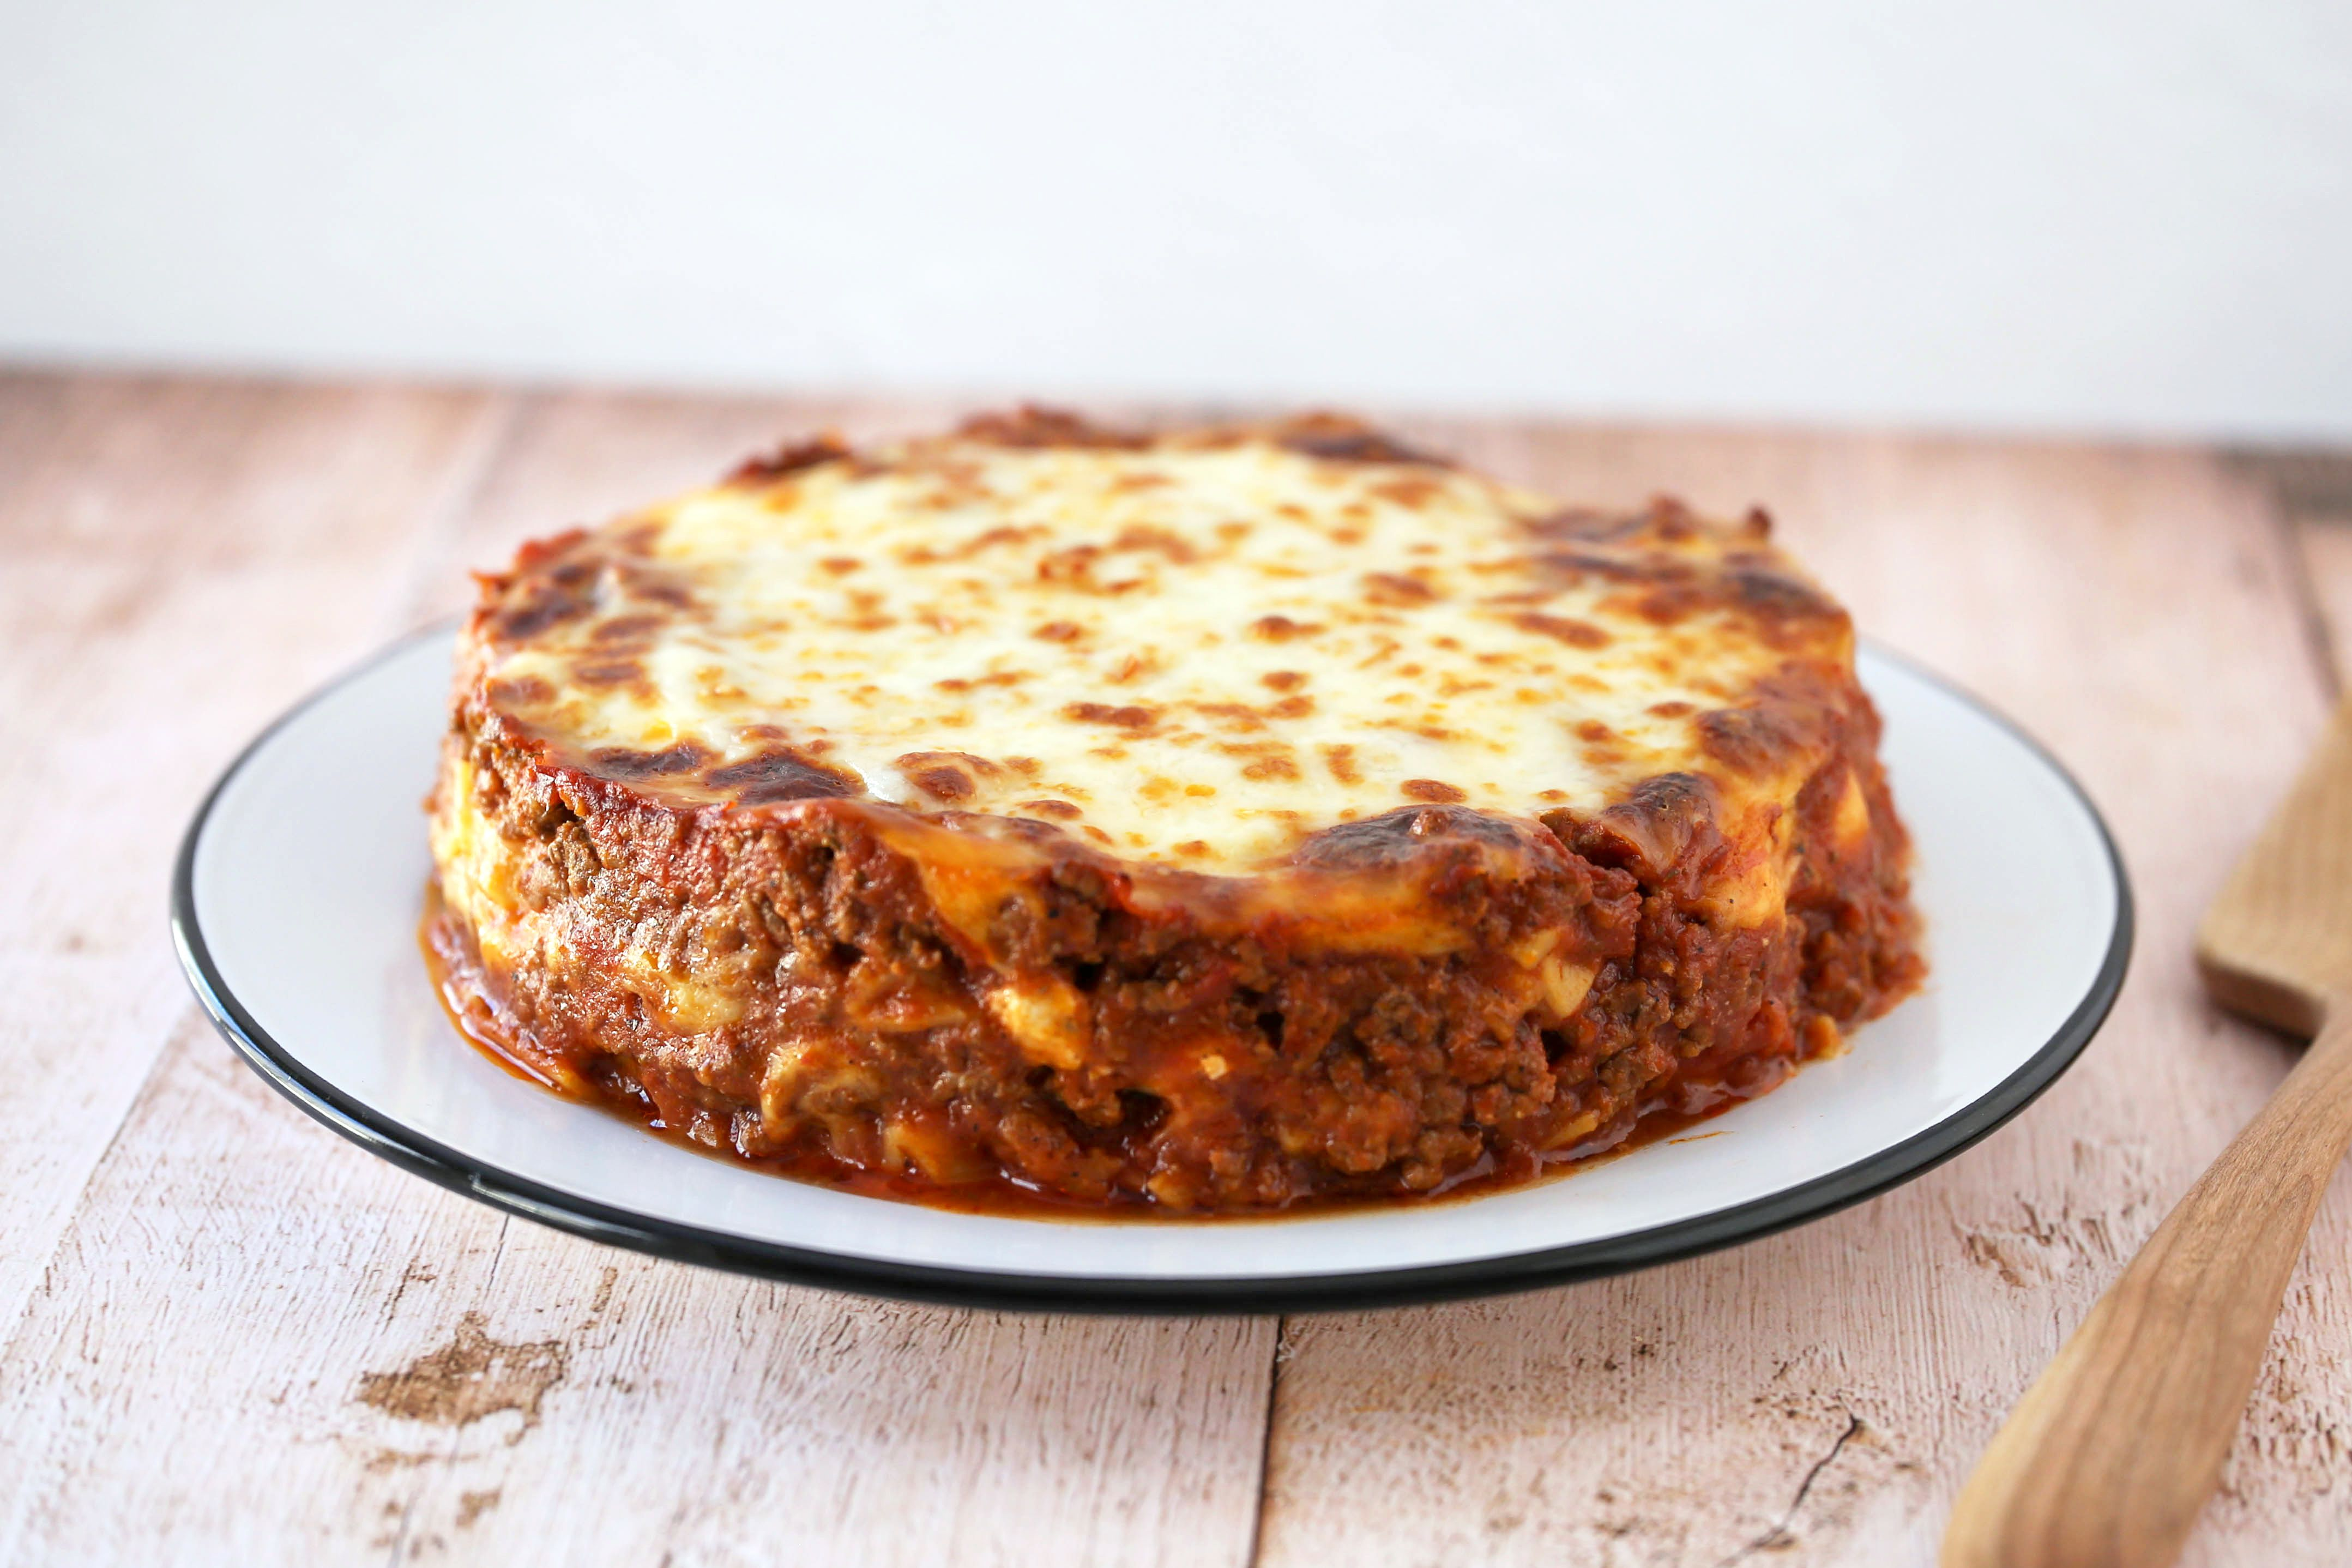 Move the lasagna to a serving plate.